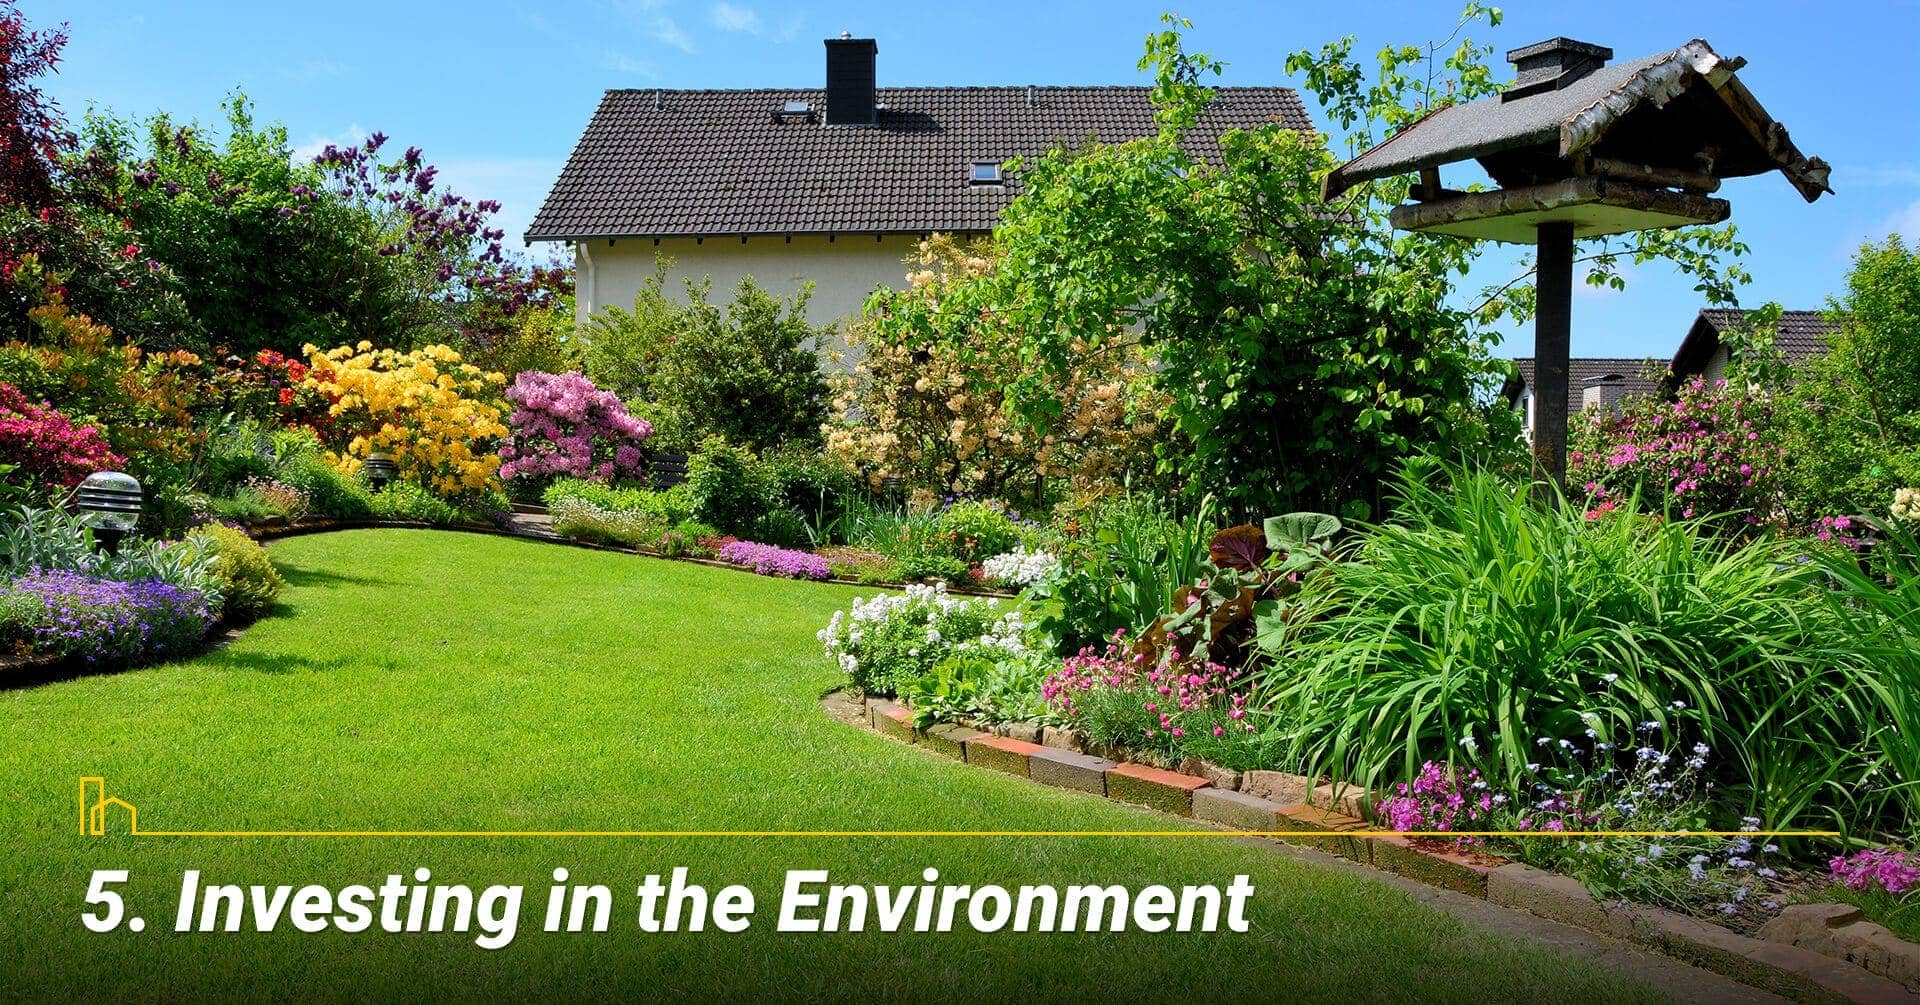 Investing in the Environment